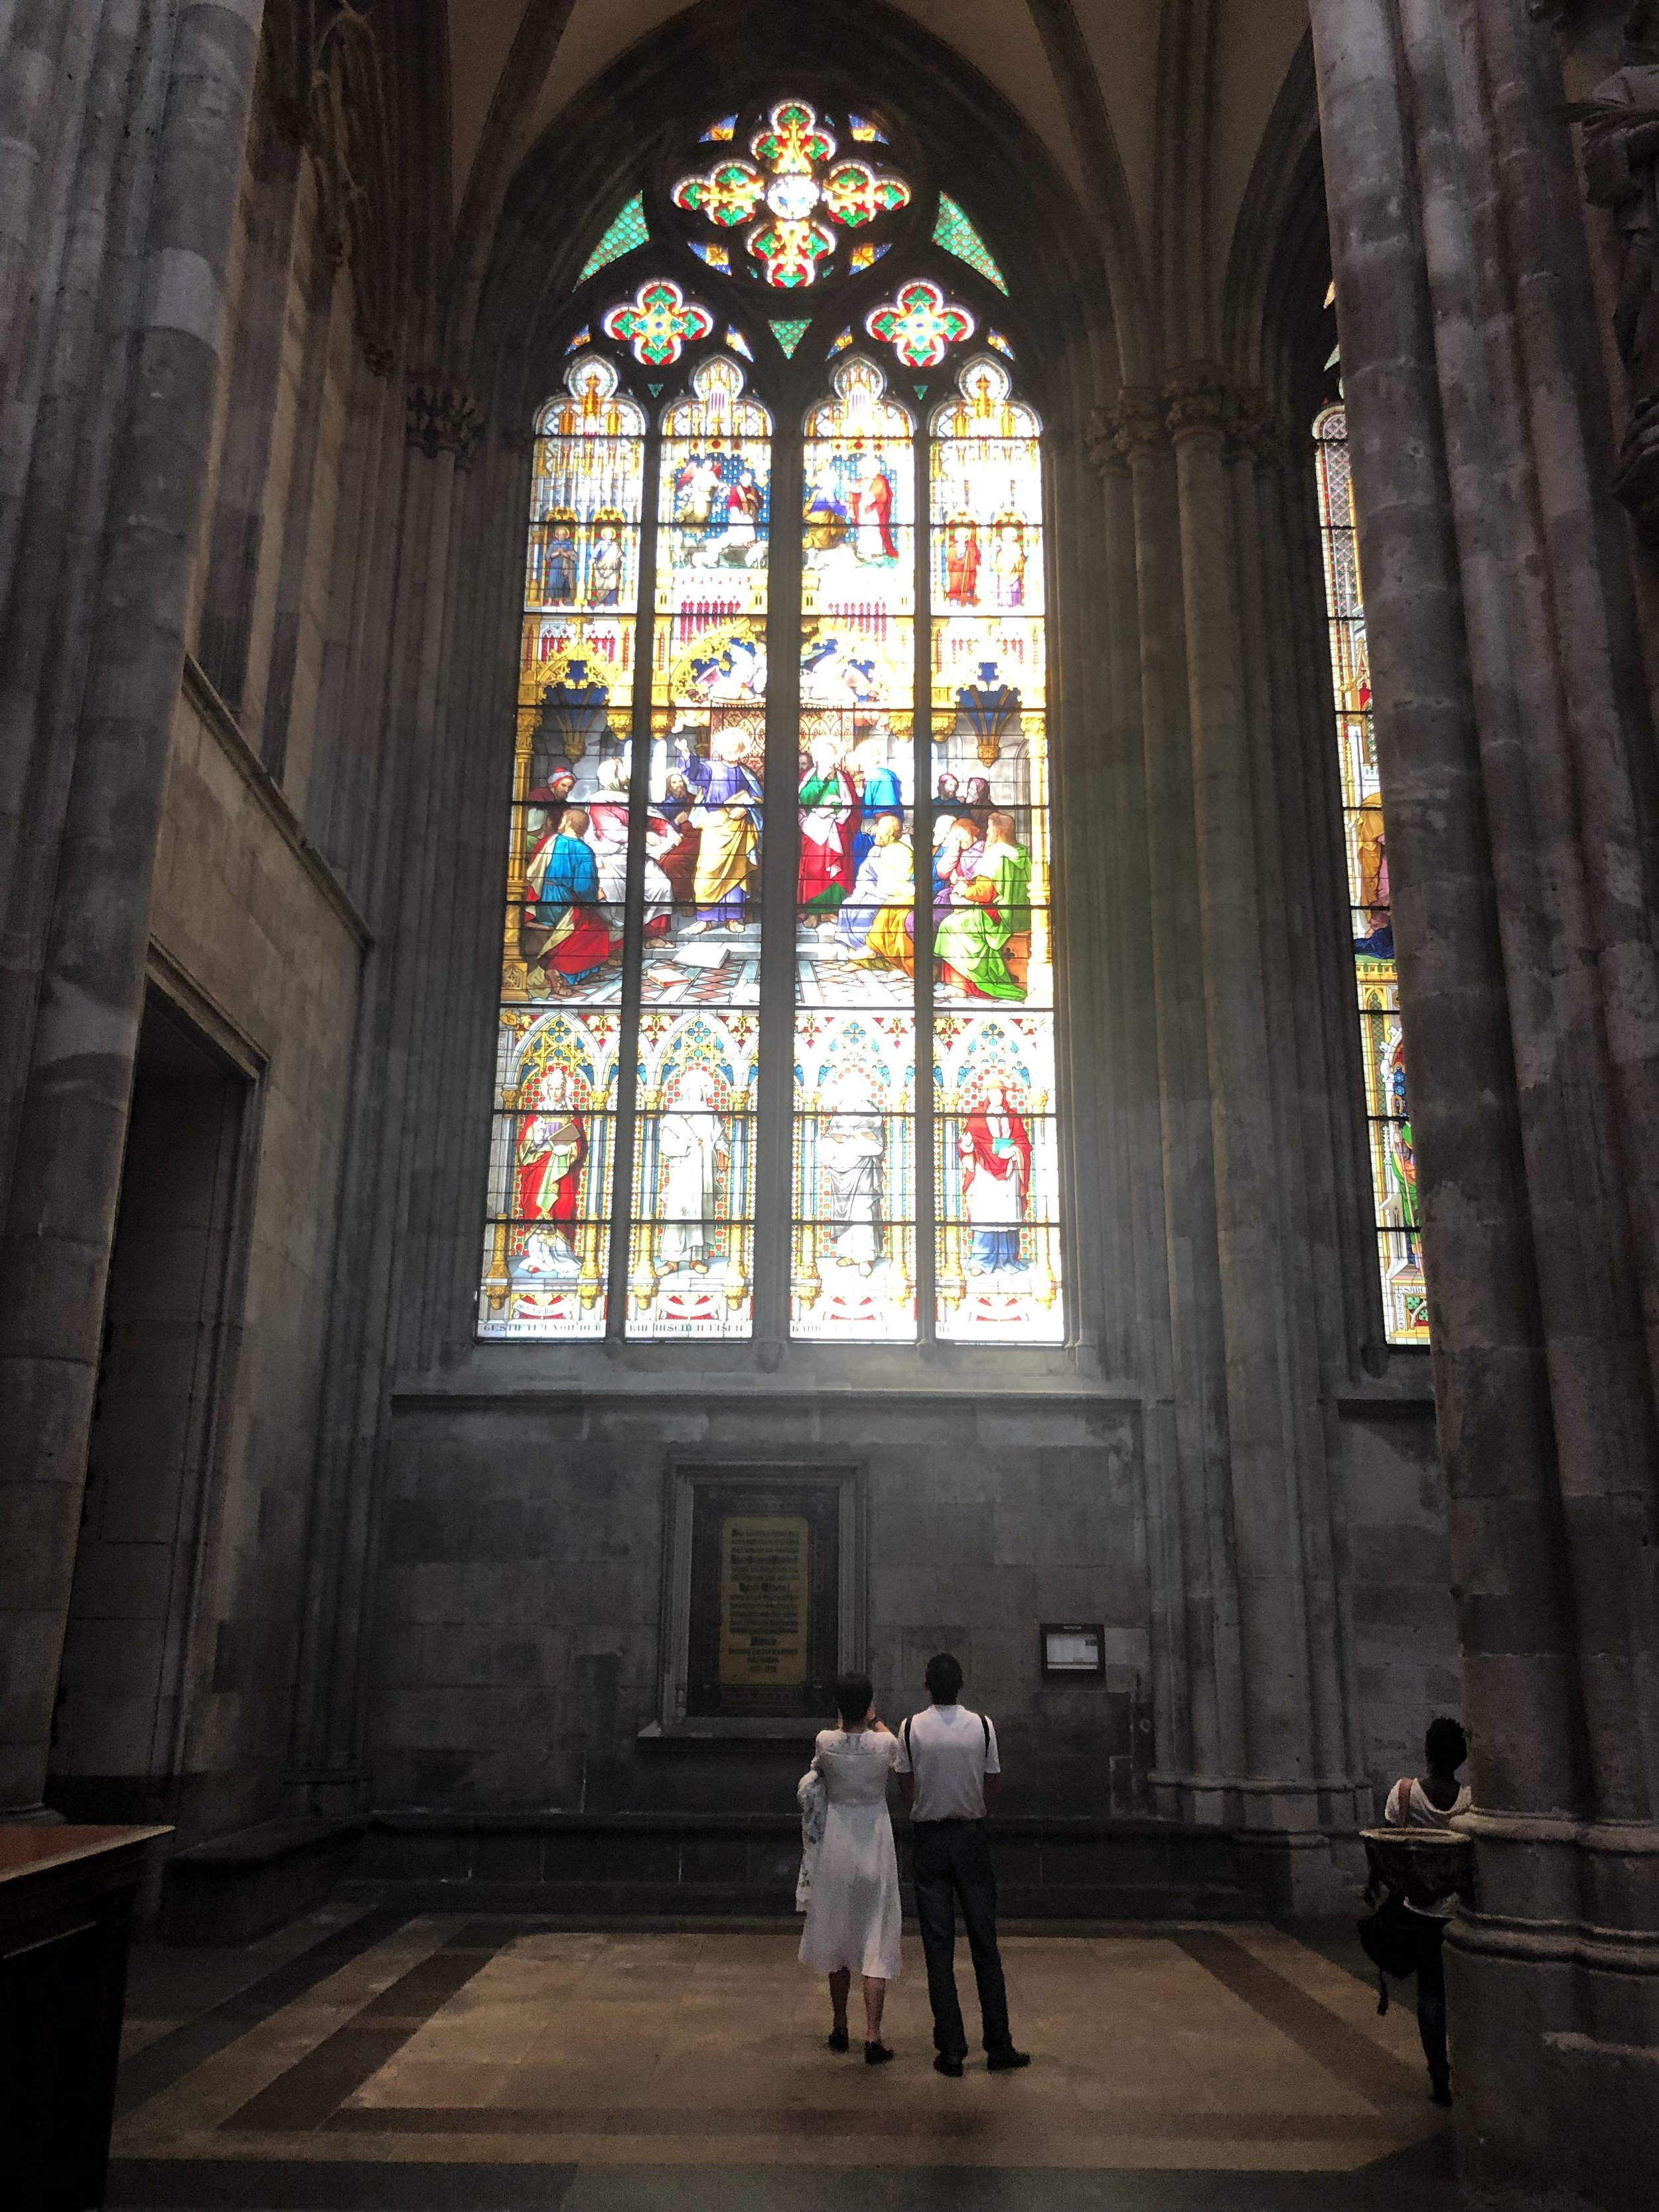 Inside the Cologne Cathedral I found this couple in awe of one of the enormous stained glass windows. This cathedral was the most impressive we came across during our travels.